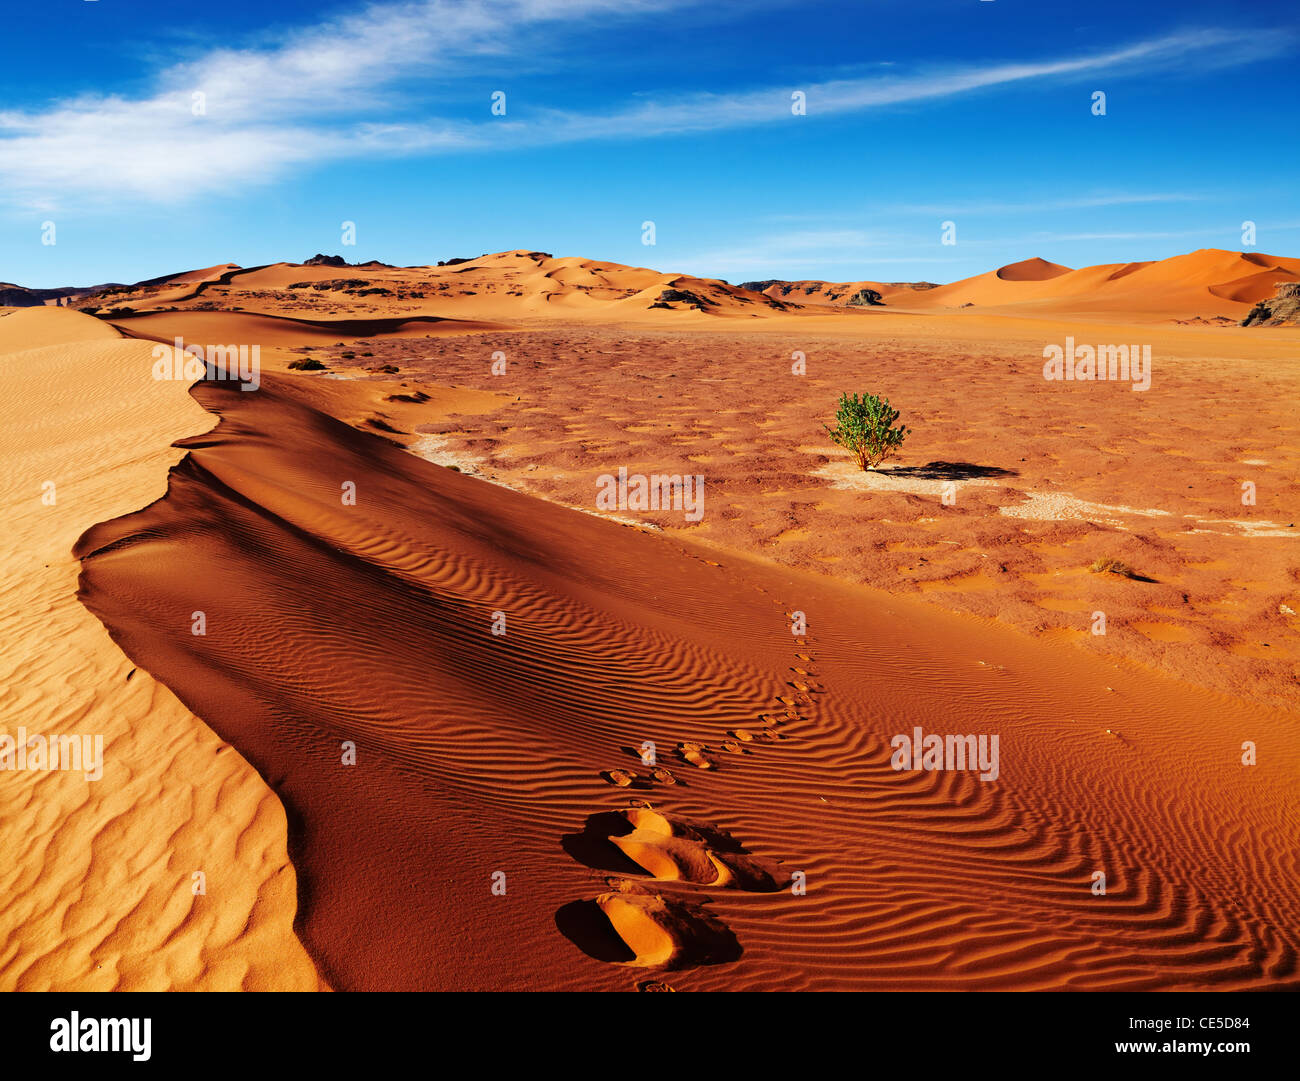 Single tree in Sahara Desert, Algeria - Stock Image